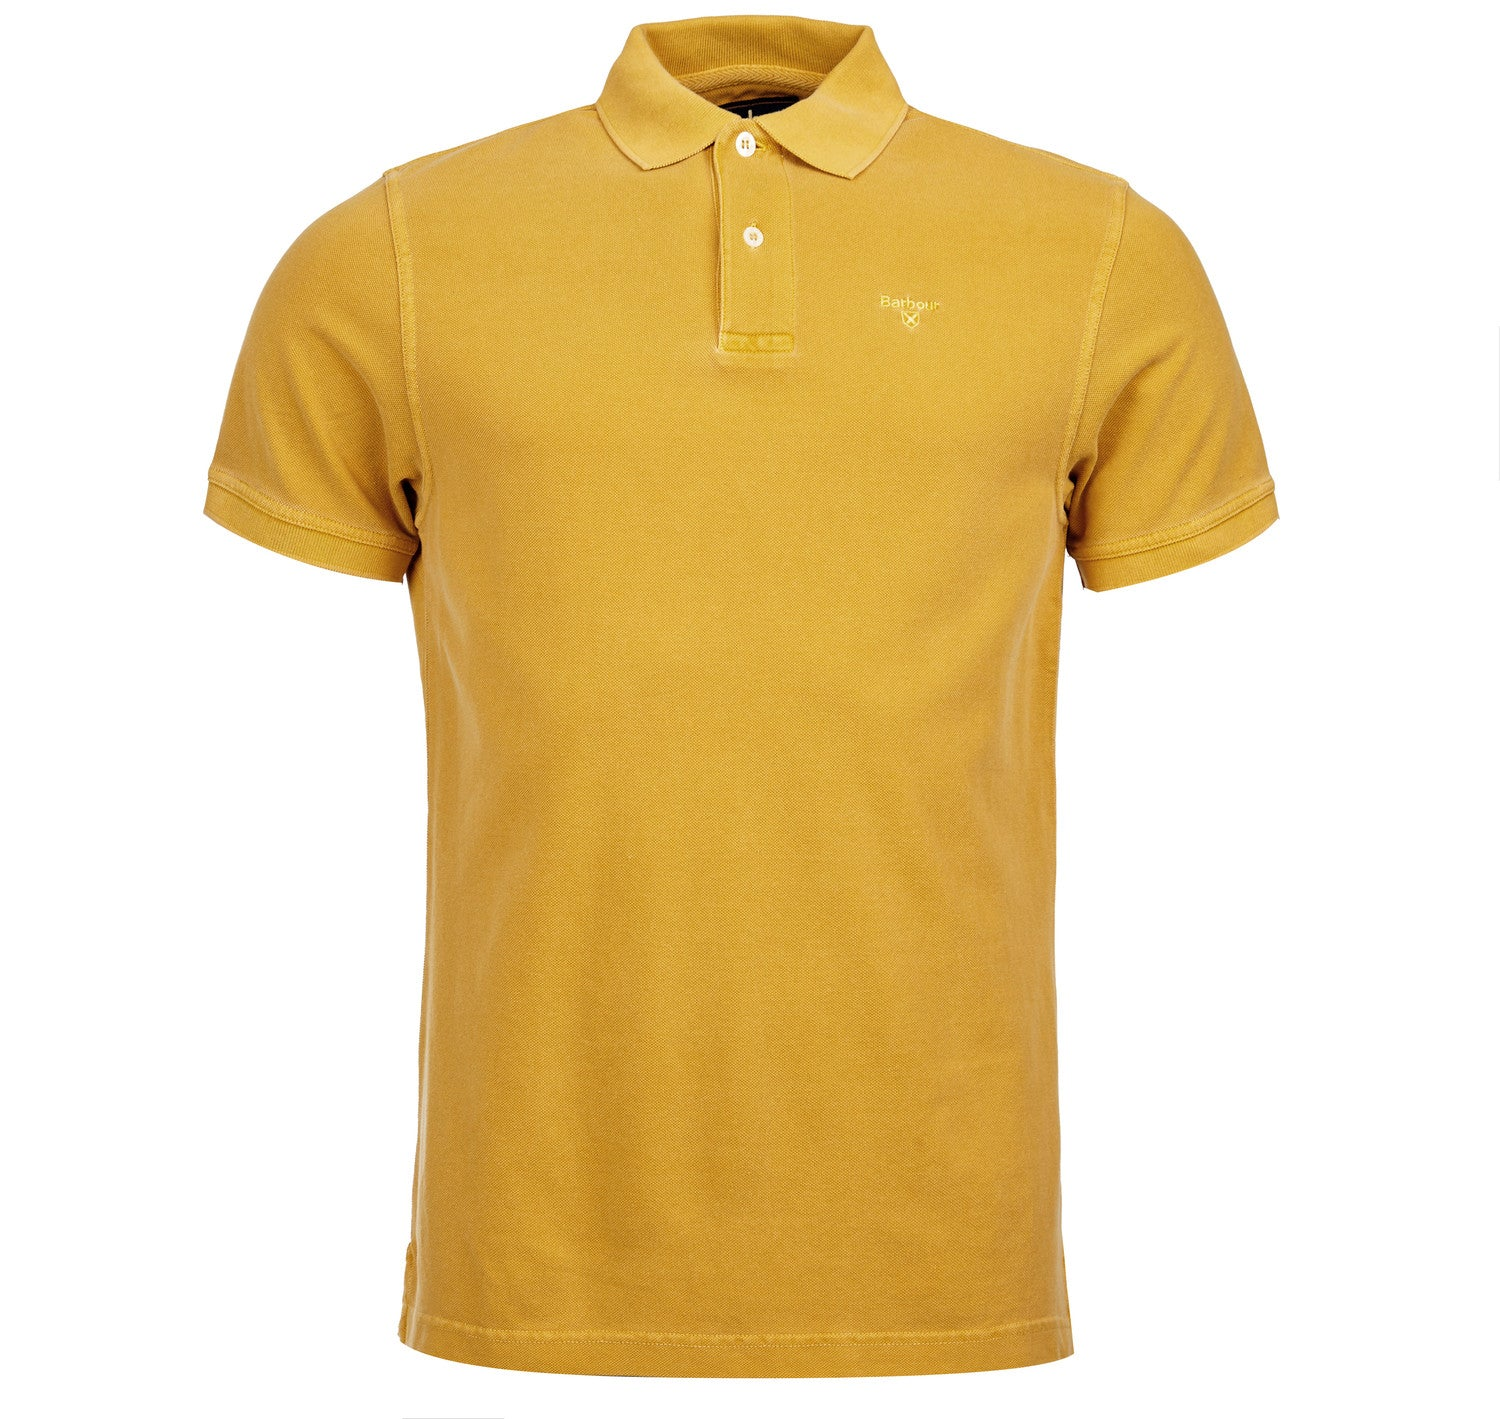 Barbour Washed Sports Polo for Men in Mustard